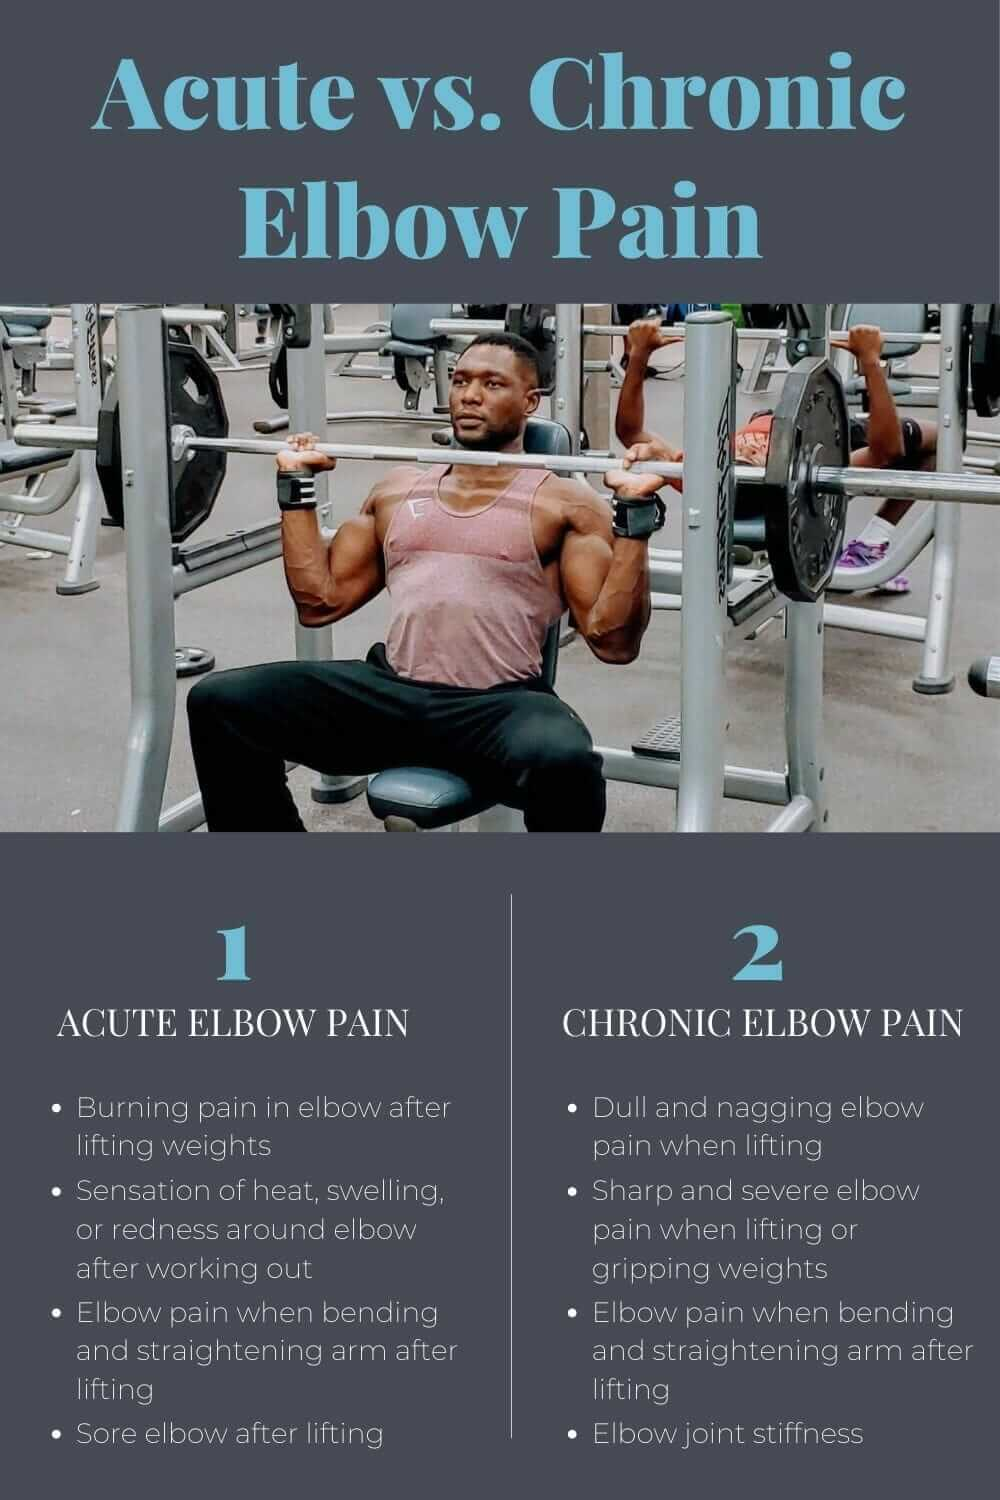 Comparison of Acute vs Chronic weight lifting elbow pain